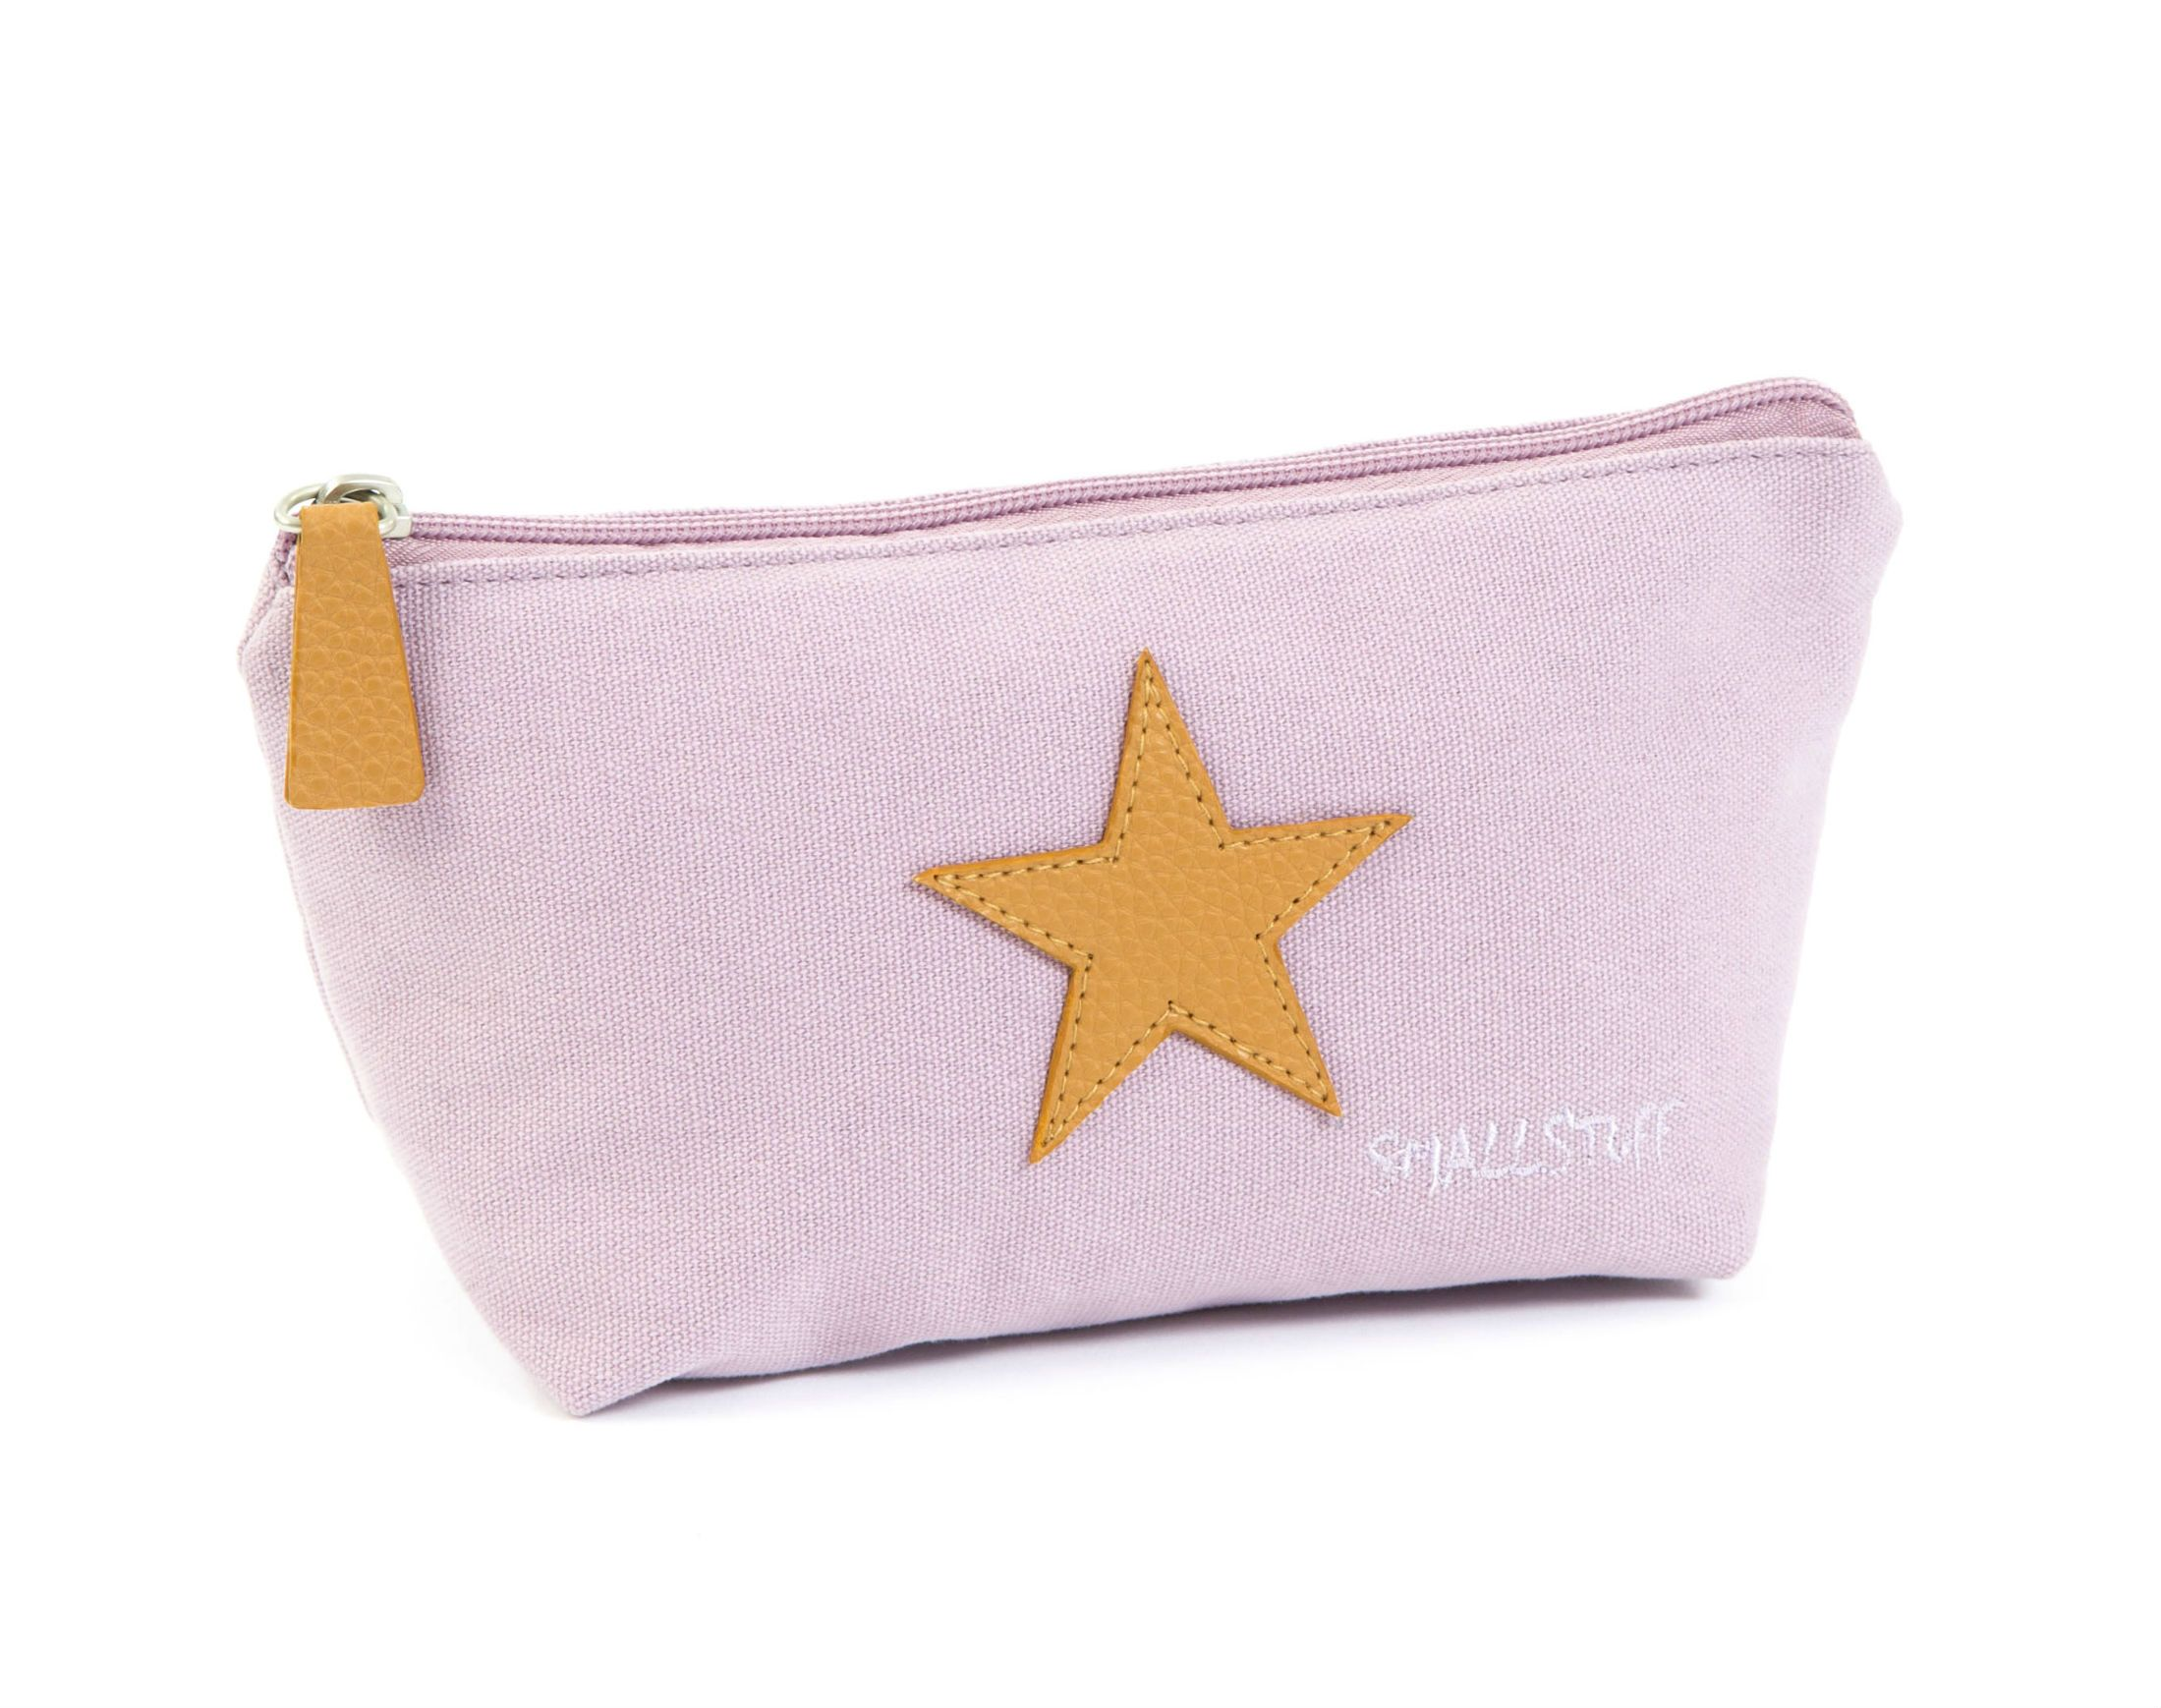 Toilettaske fra Smallstuff - Soft Rose Kanvas & Leather Star - Lille